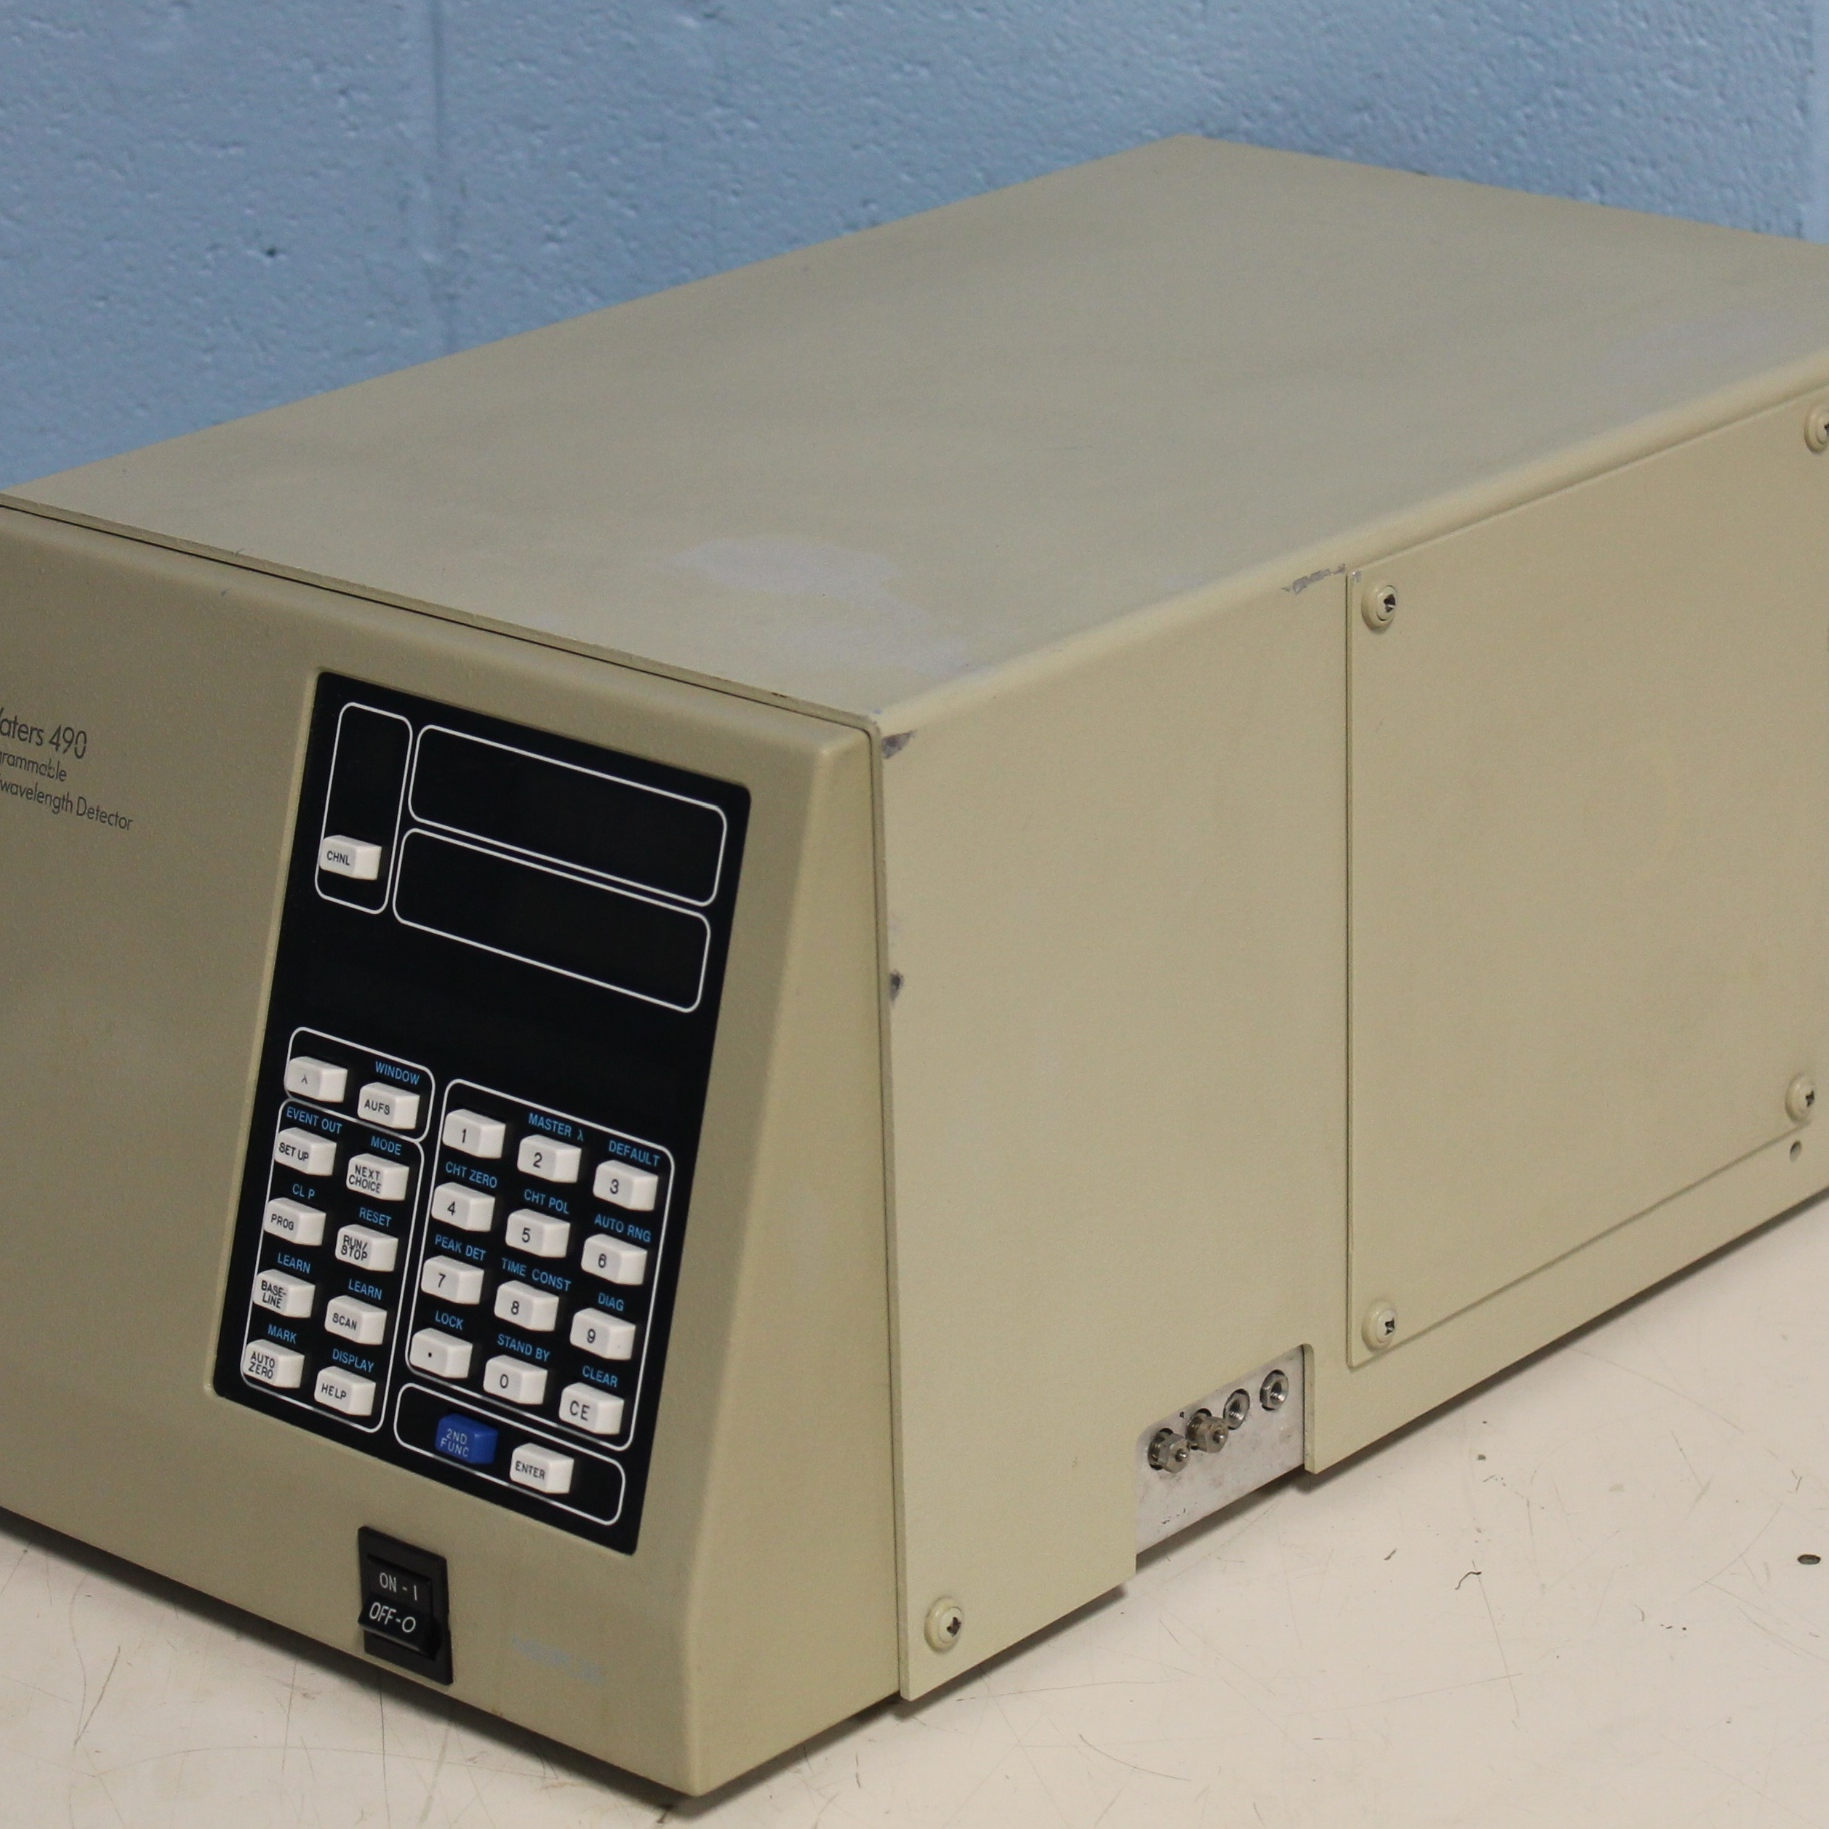 Waters 490 Programmable Multiwavelength Detector Image